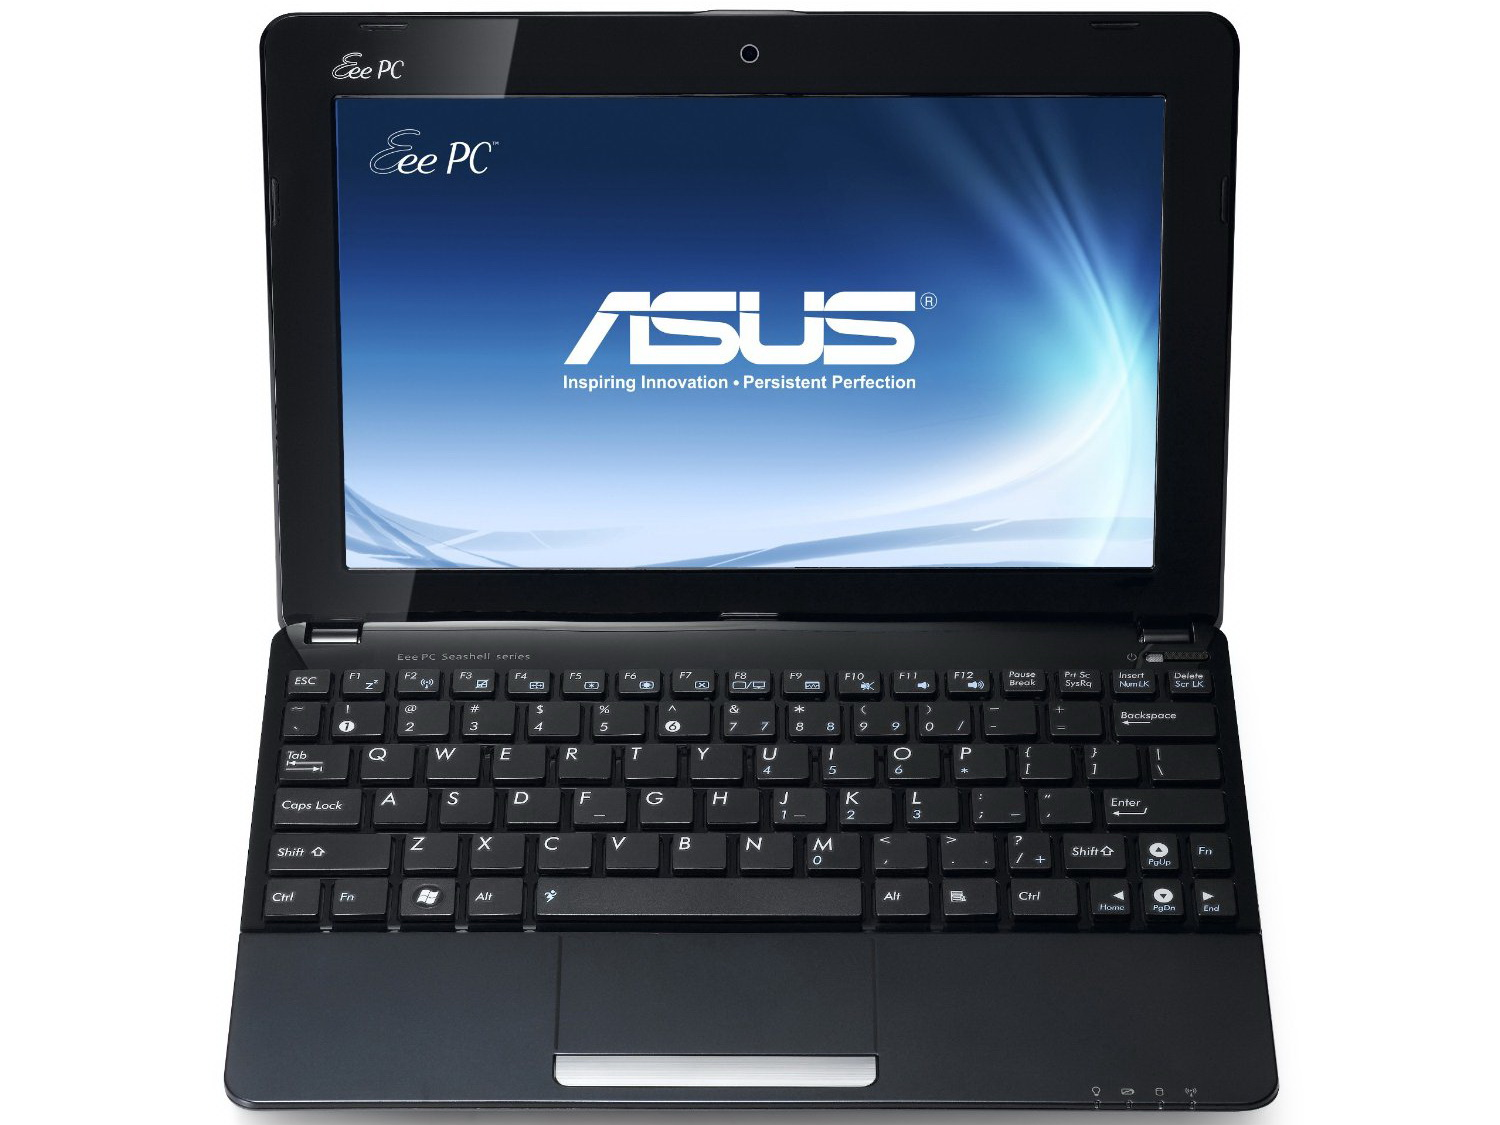 asus 10 1 zoll netbook r051bx mit amd fusion c 50 apu f r. Black Bedroom Furniture Sets. Home Design Ideas